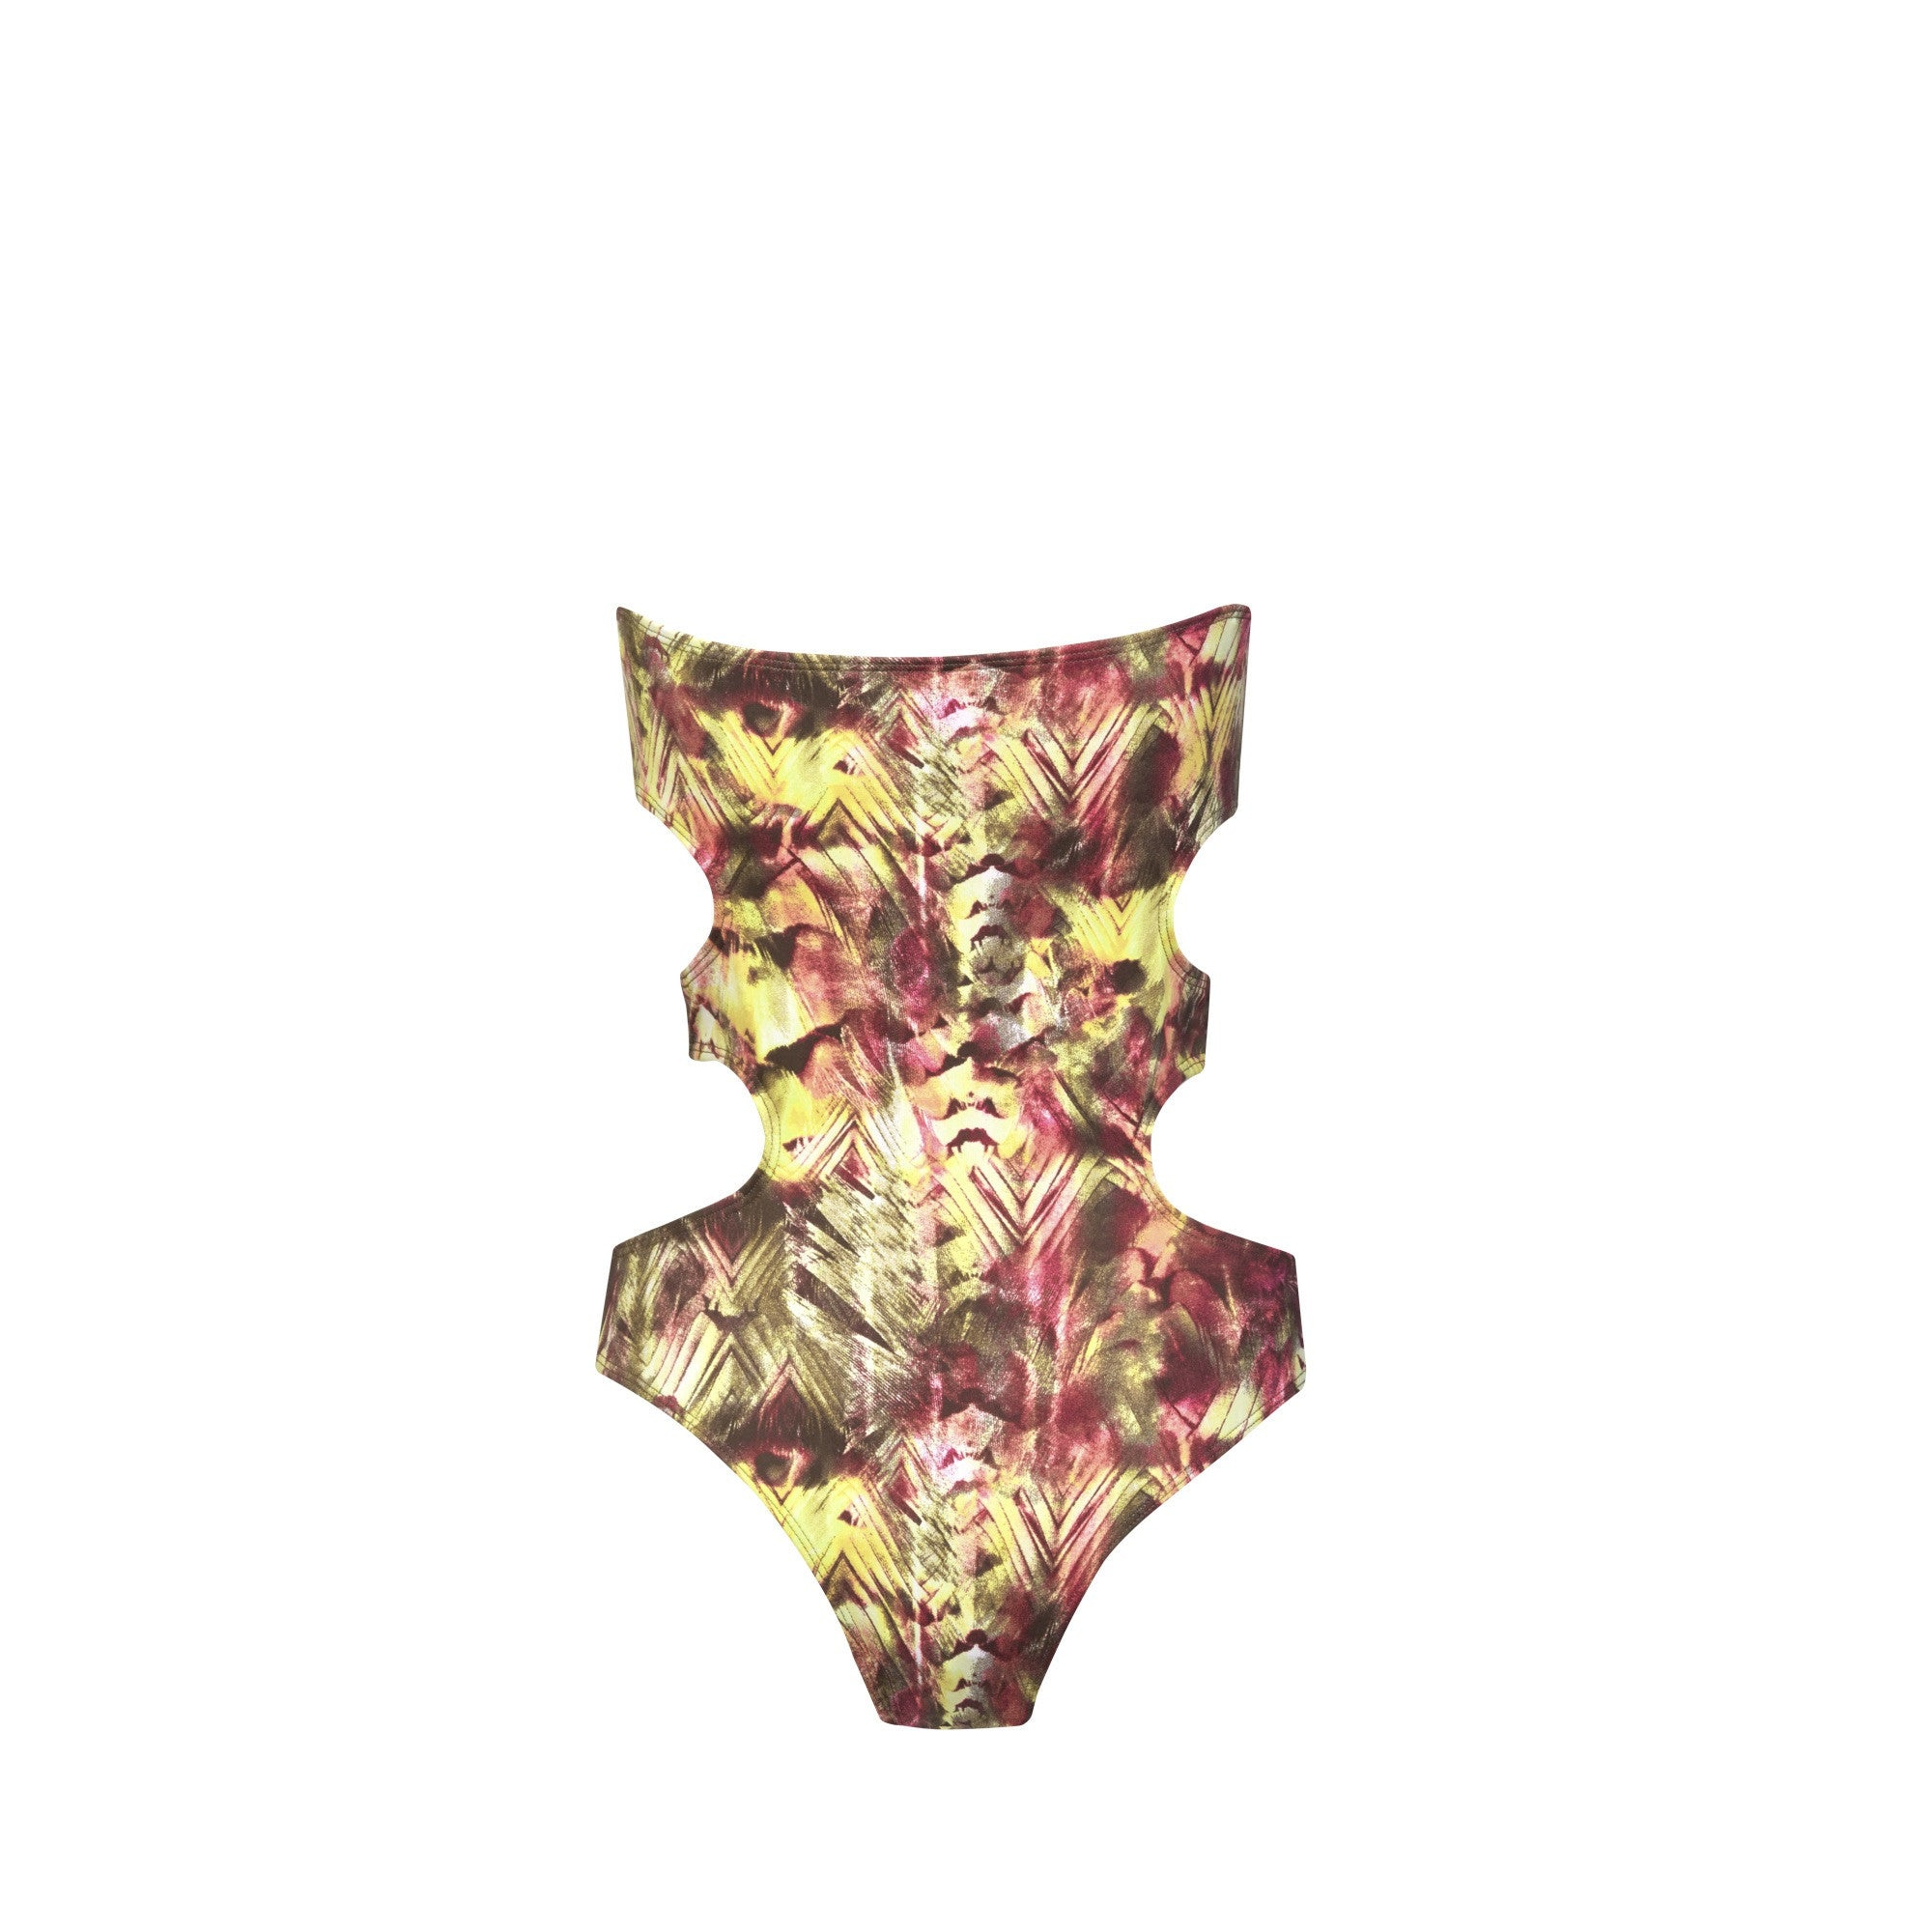 Dunes One-Piece in Desert Lizard by Tuhkana Swimwear